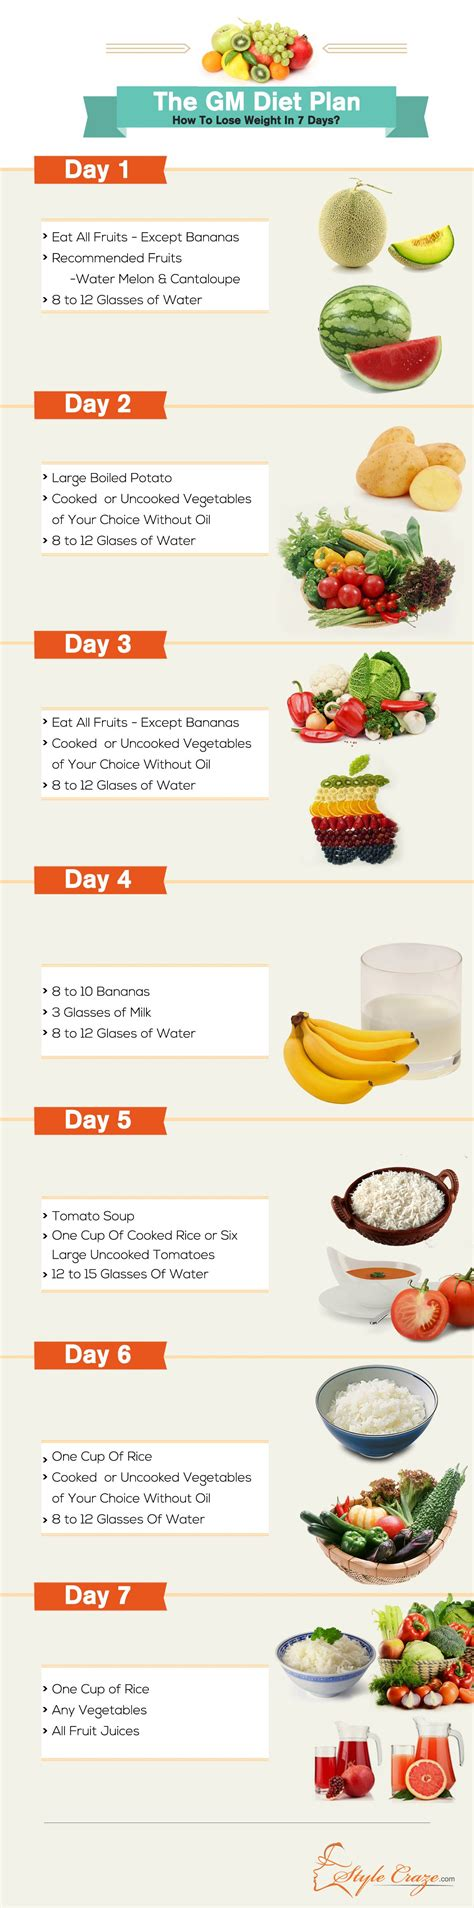 Gm Detox Diet Results by The Gm Diet Plan How To Lose Weight In Just 7 Days Gm